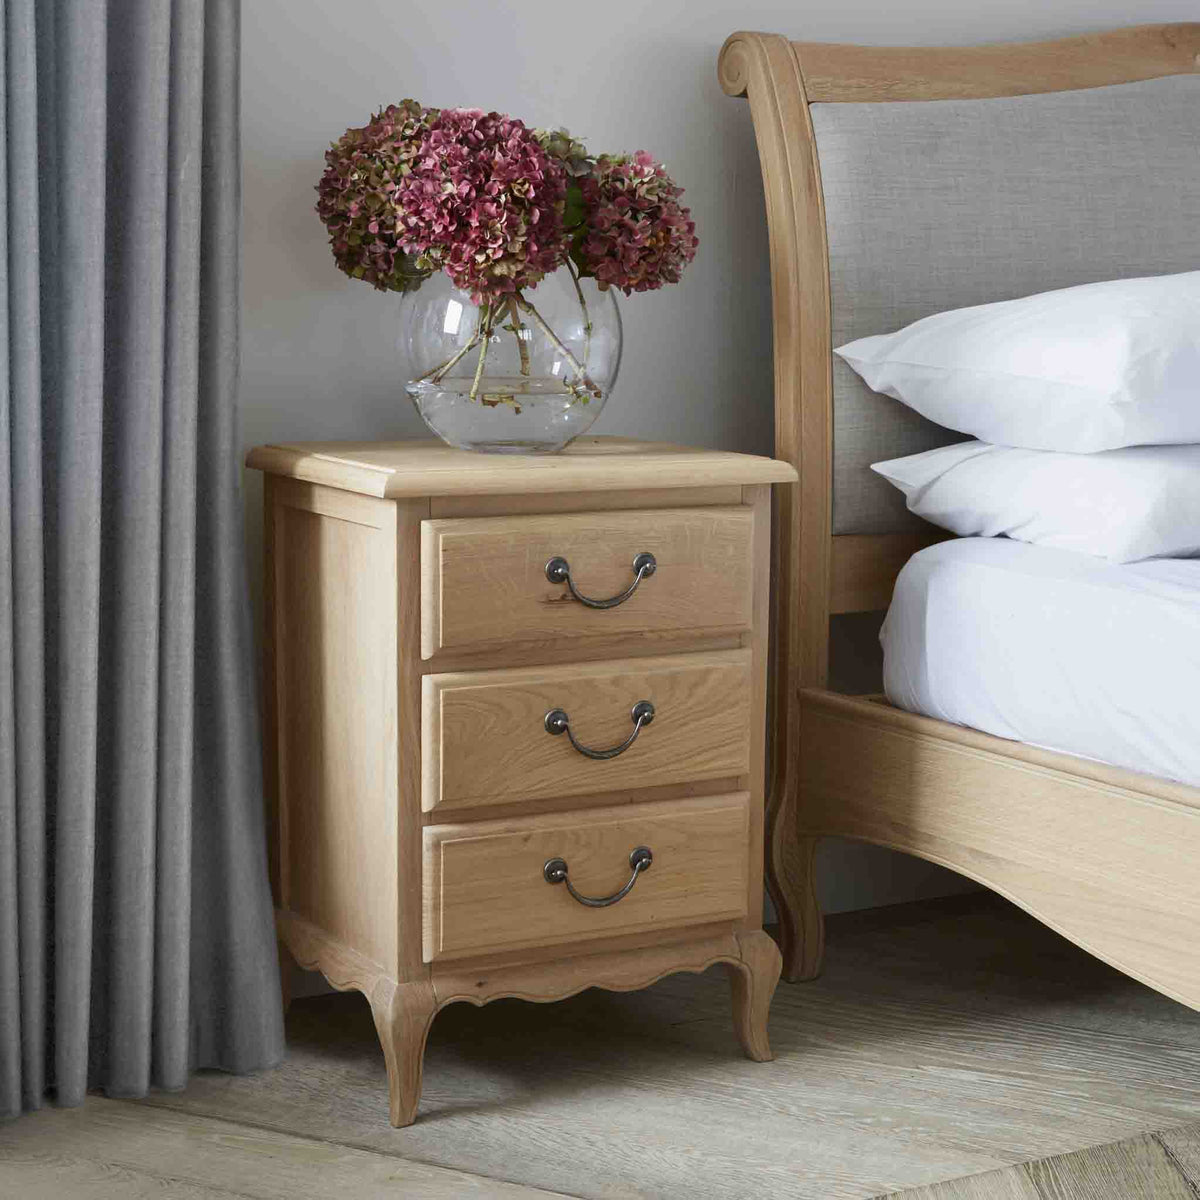 Lifestyle image of the Harrogate Oak French Style Bedside Table